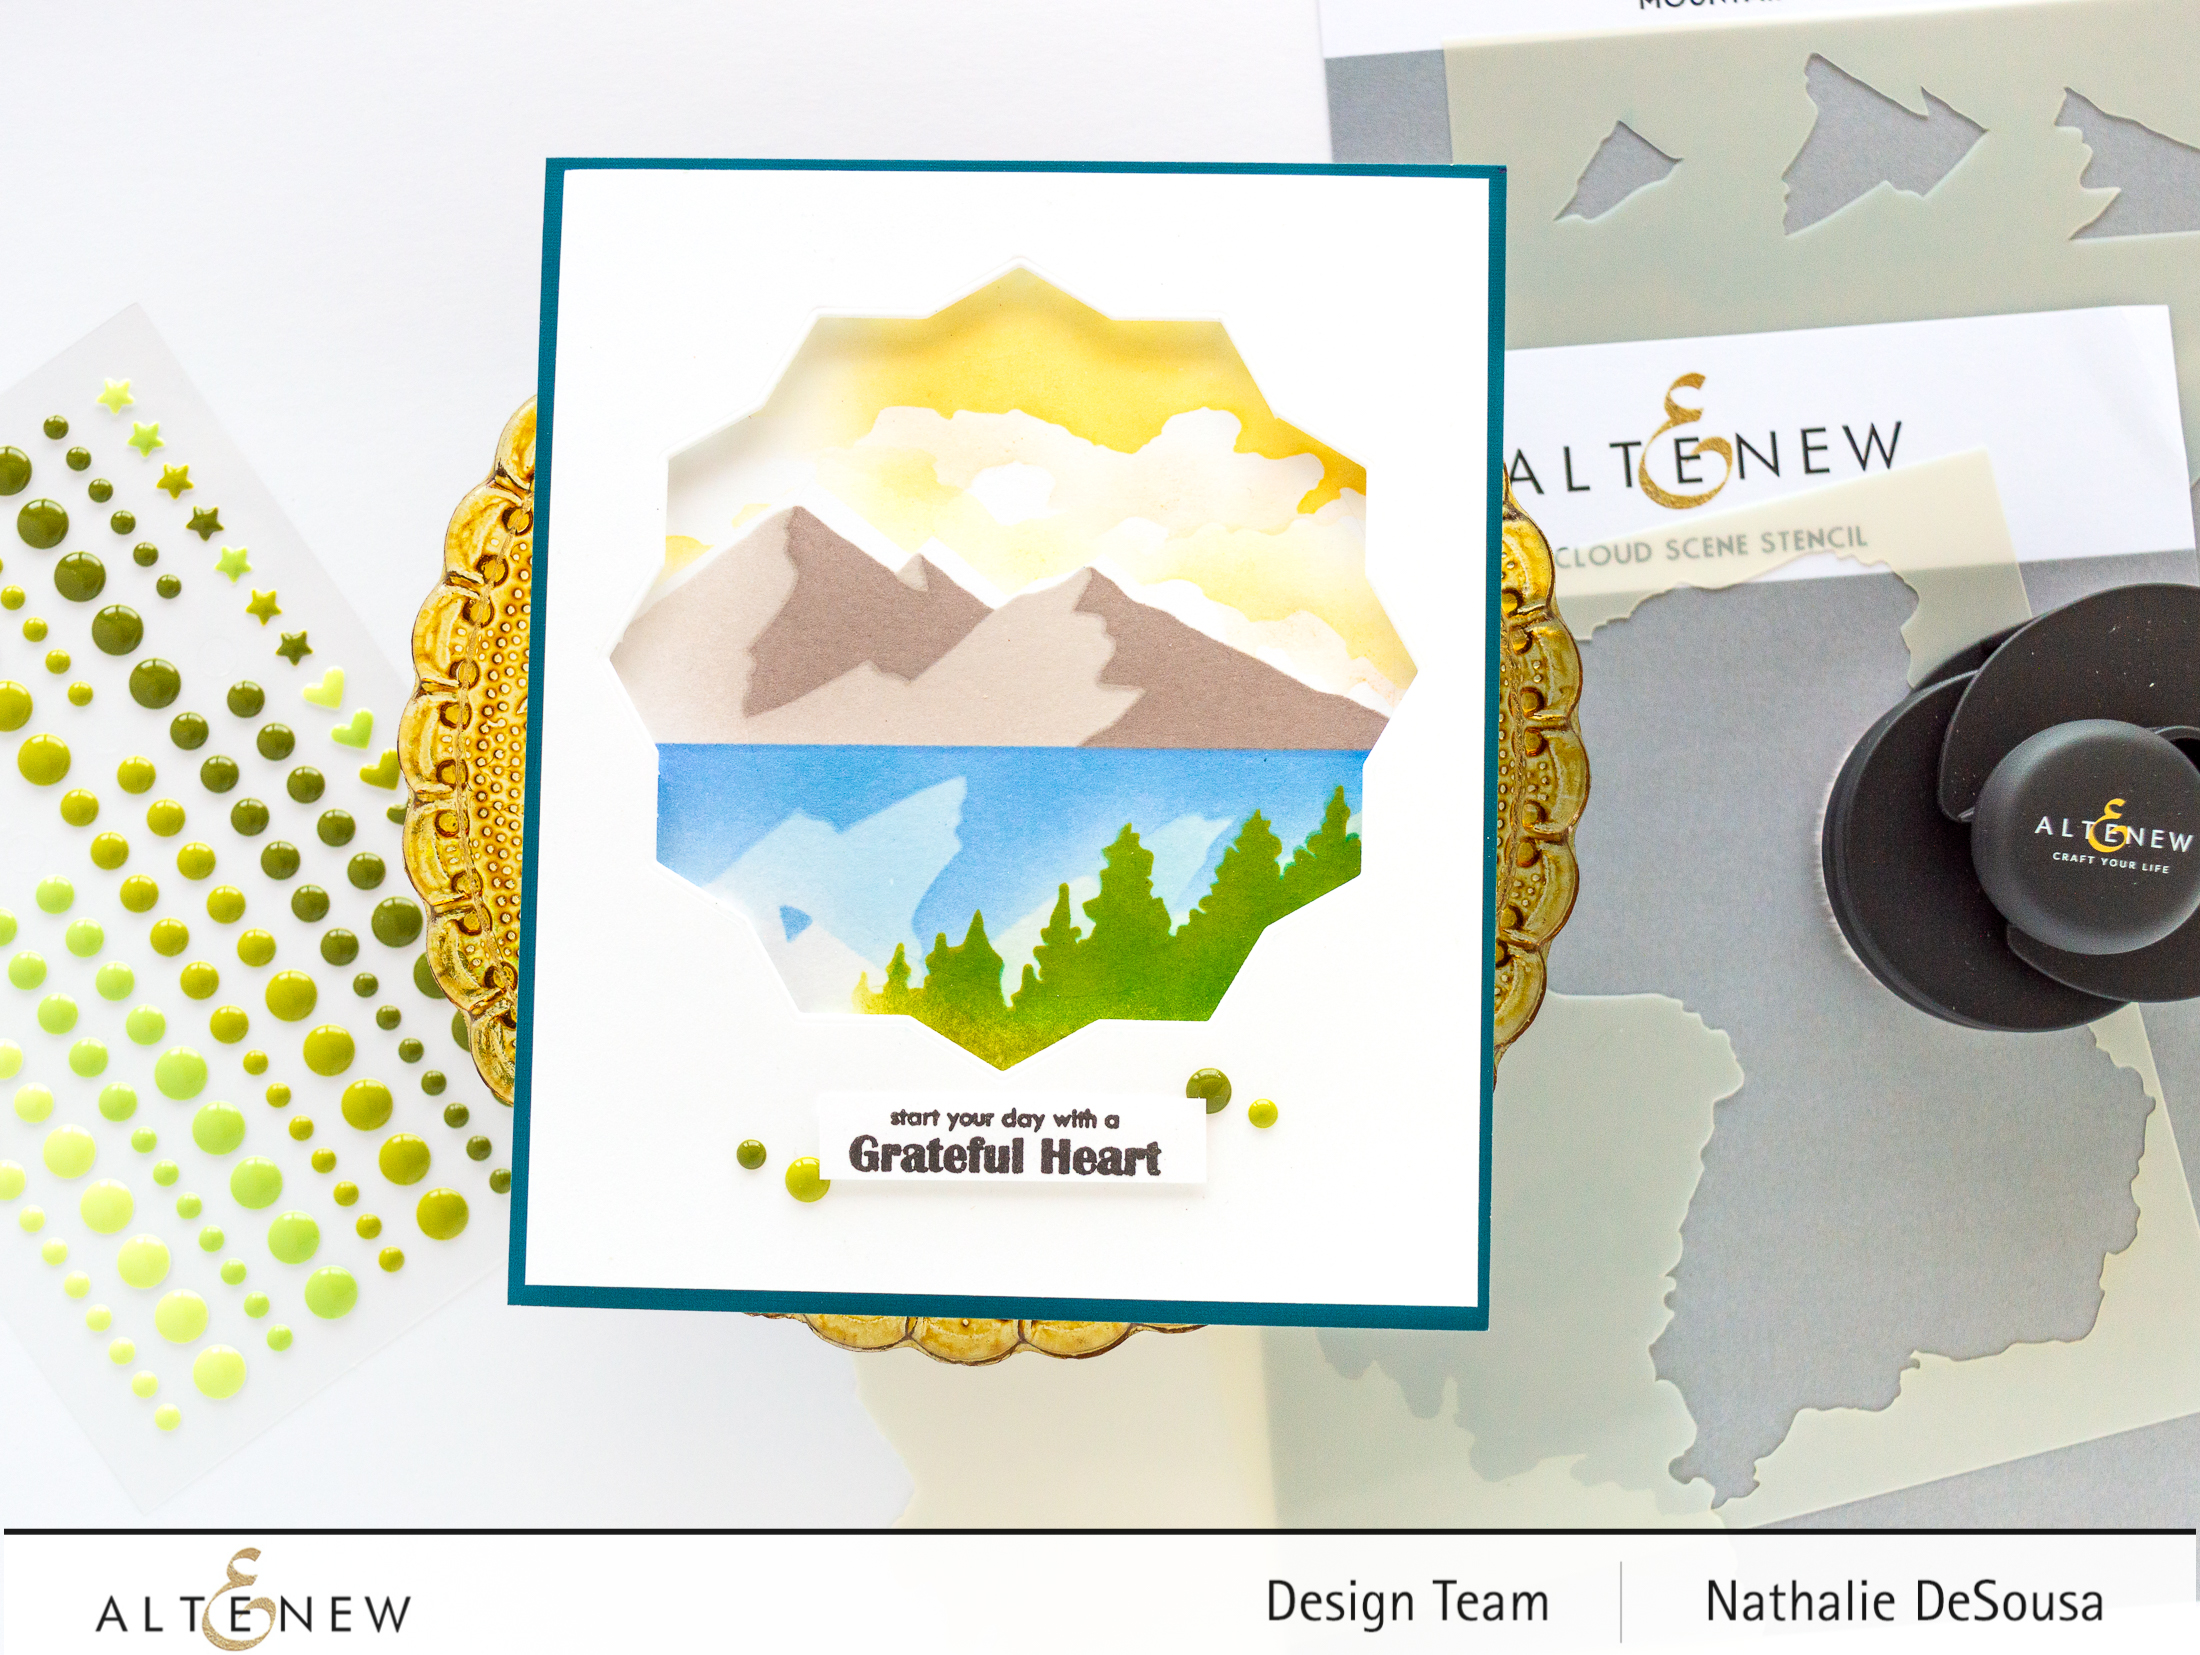 @altenew_Cloud Scene stencil, Mountain Scene stencil, Tropical Forest Enamel dots- Card by Nathalie DeSousa